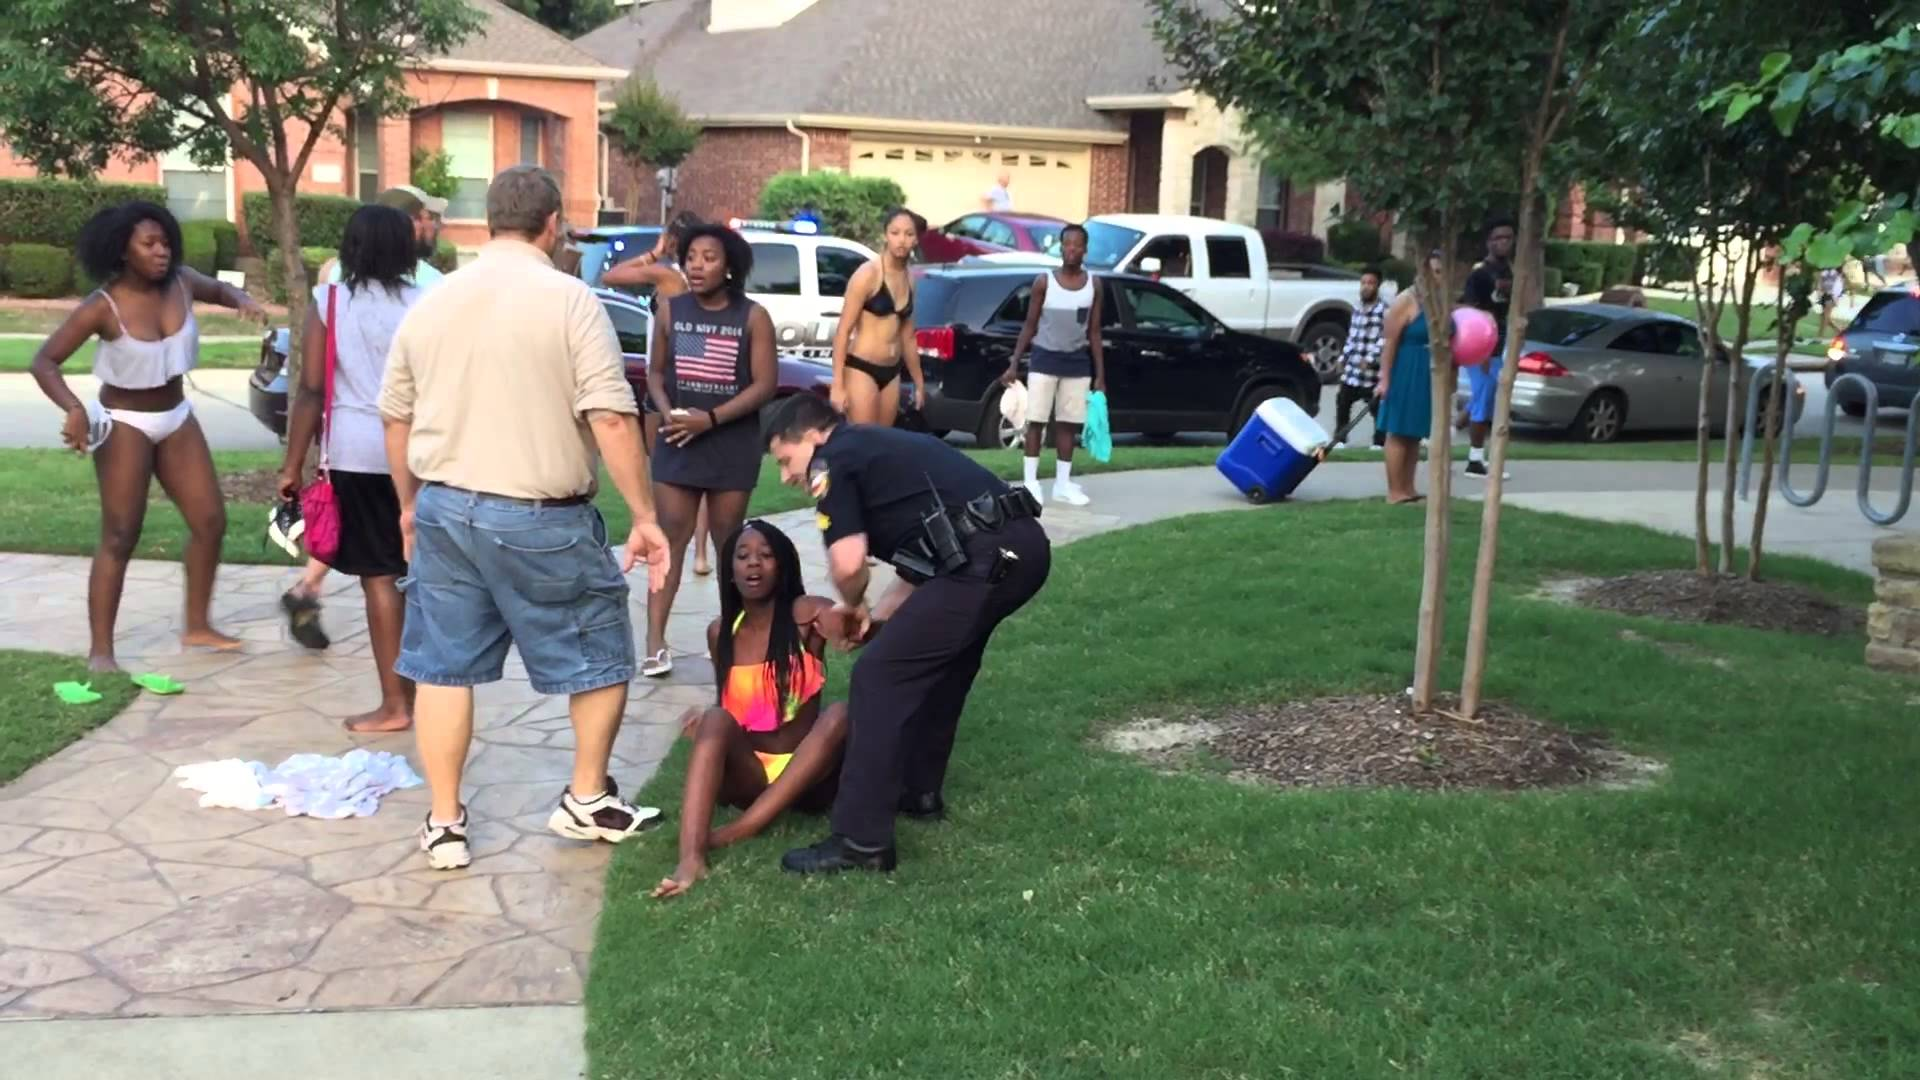 The cops crashed this pool party